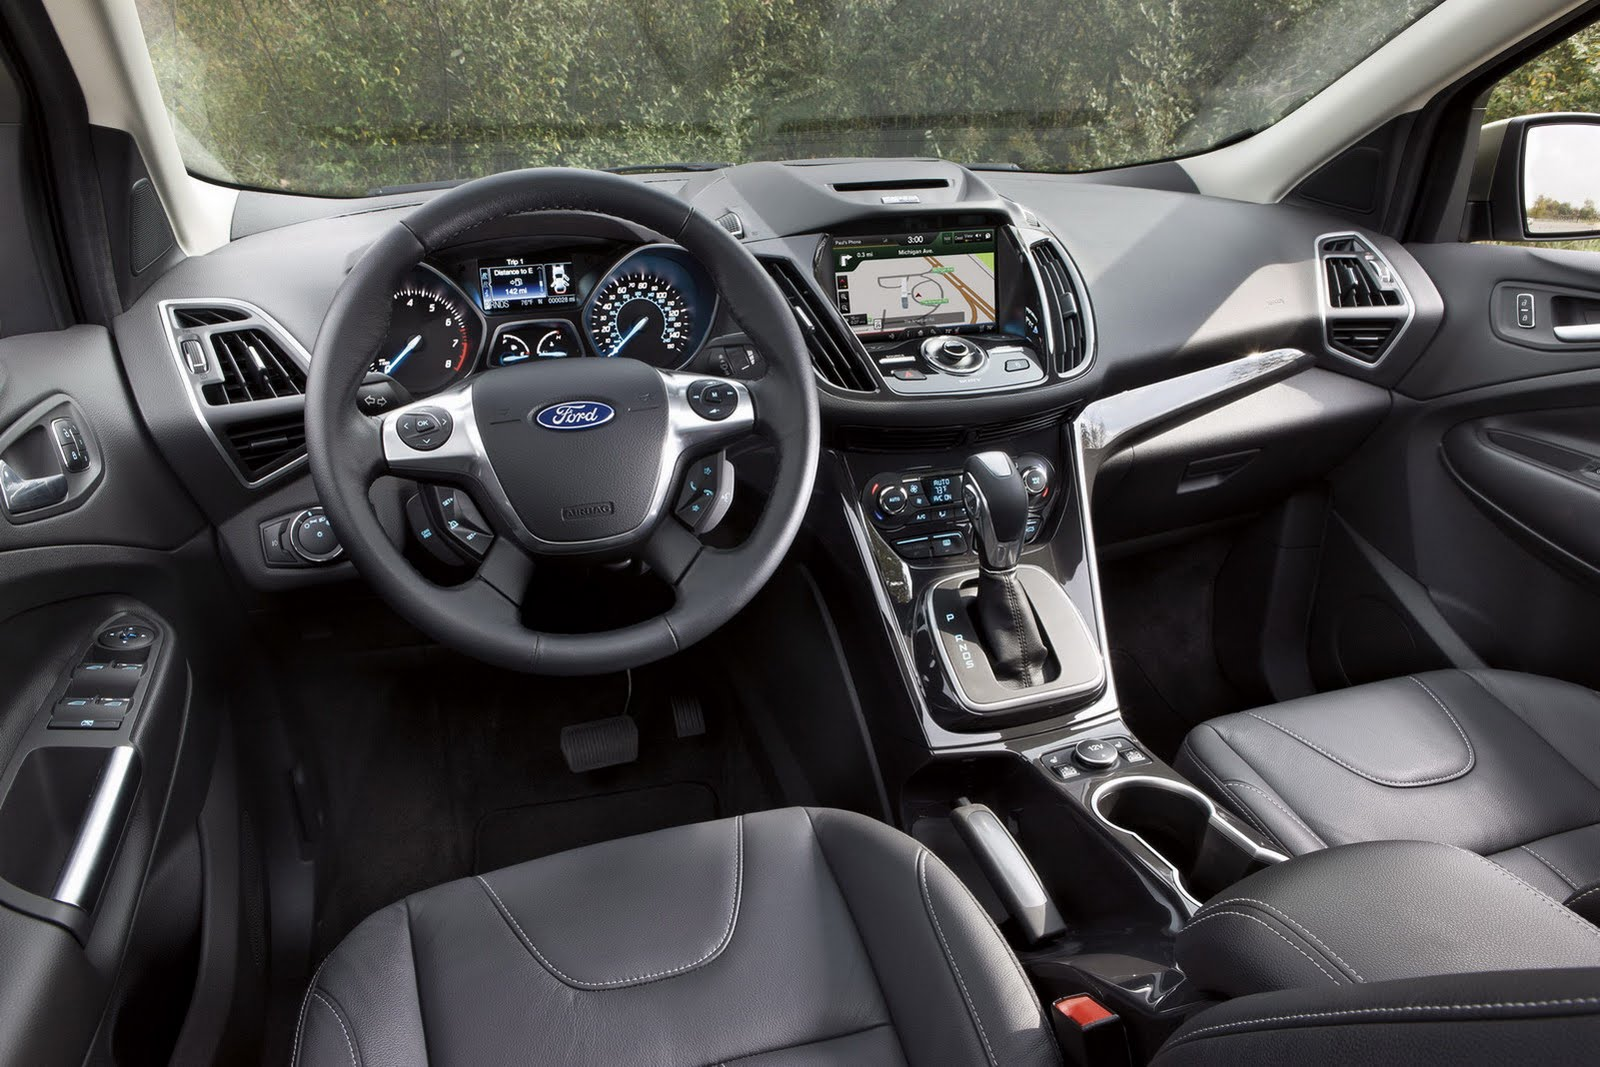 Once again ford makes me eat my words i reviewed the 2005 escape years ago and thought the interior was painfully meek i never thought ford would